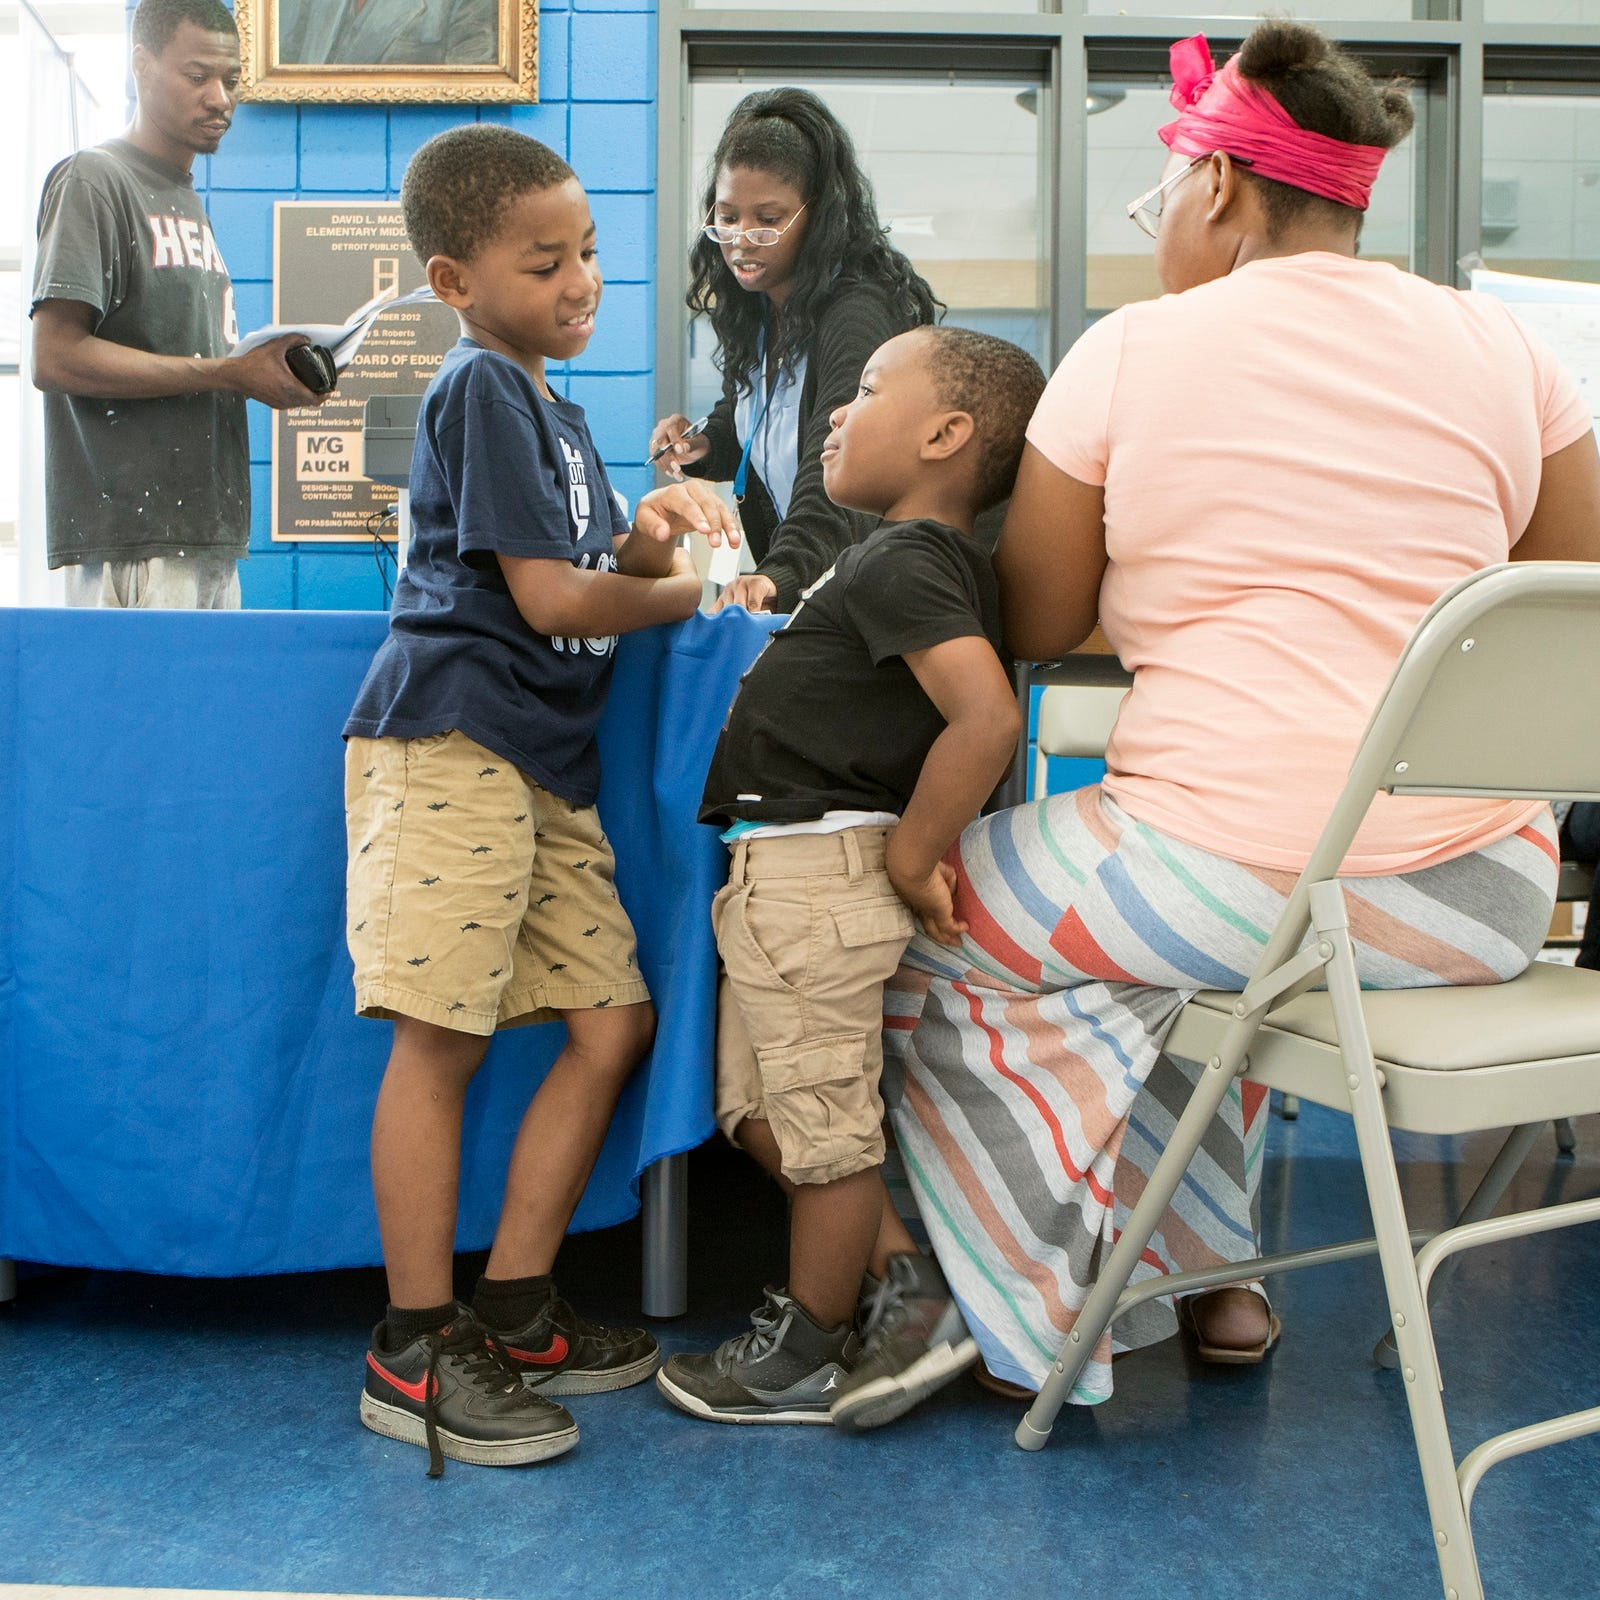 Detroit pop-up enrollment centers draw parents seeking district schools